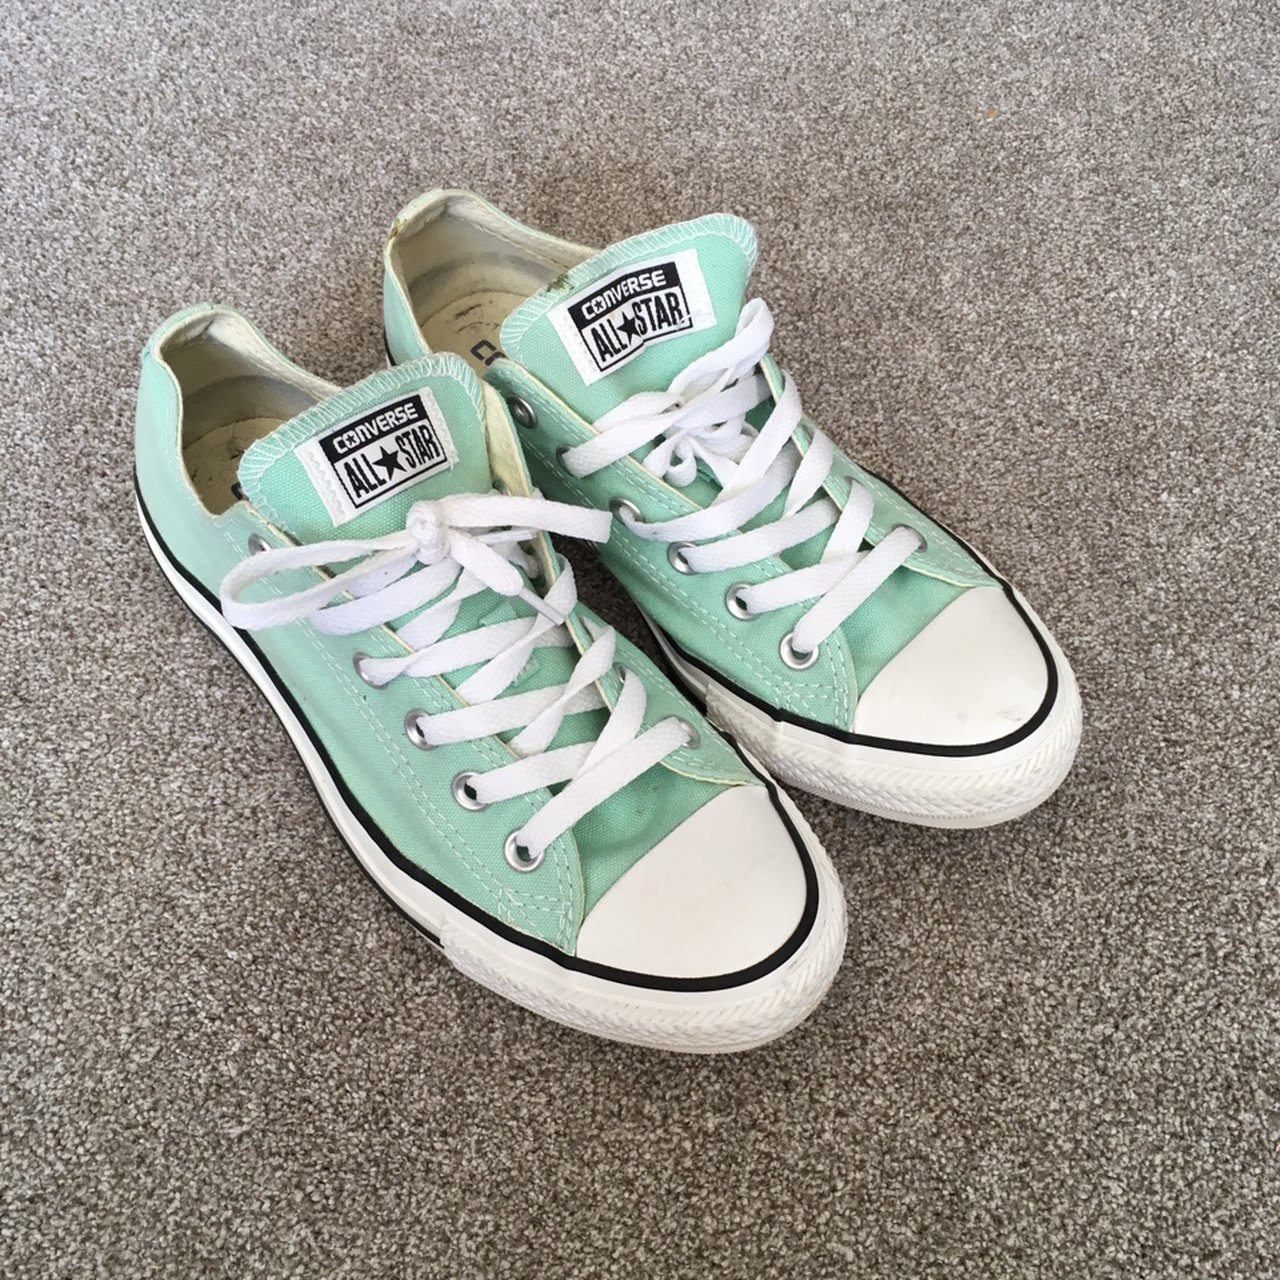 Mint green converse worn once. UK size